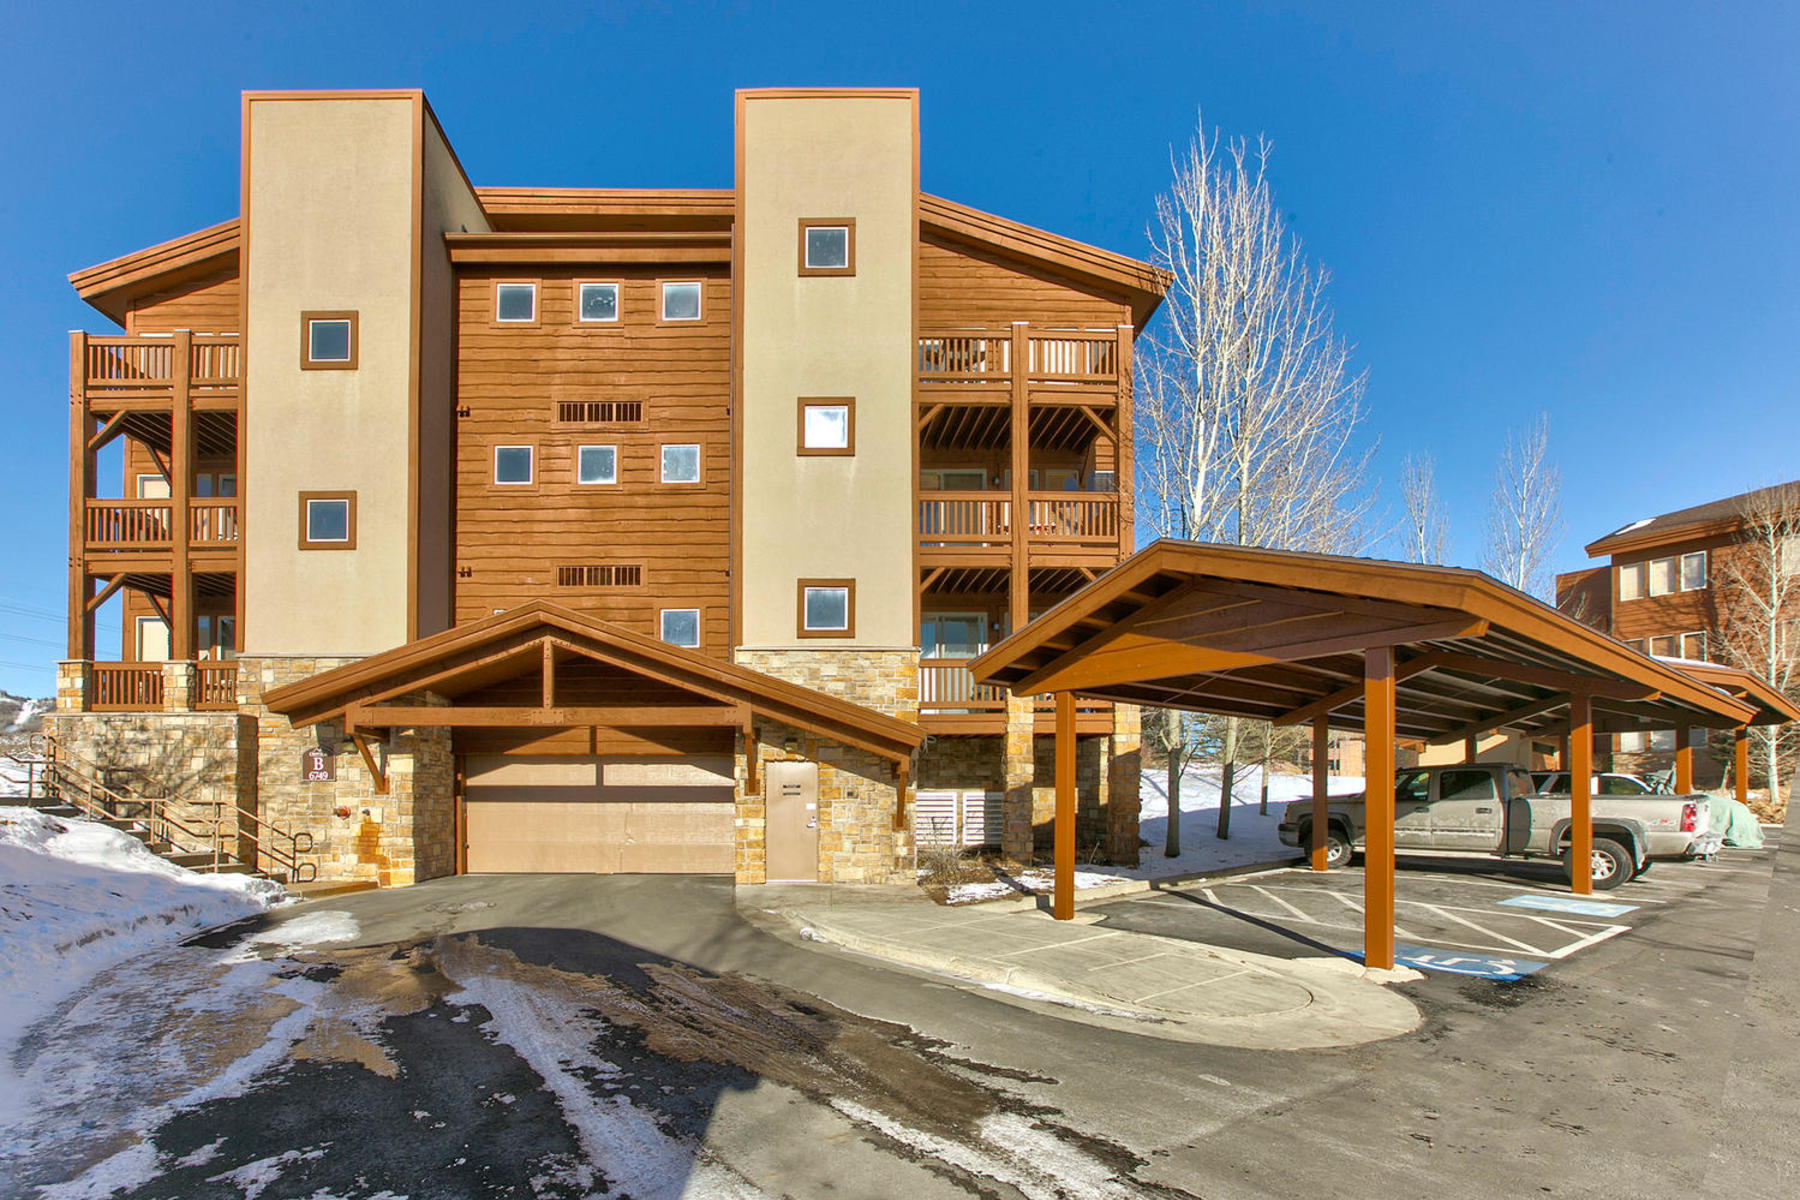 Copropriété pour l Vente à Stunning Views with Lots of Sunshine 6749 North 2200 West #B-205 Park City, Utah 84098 États-Unis